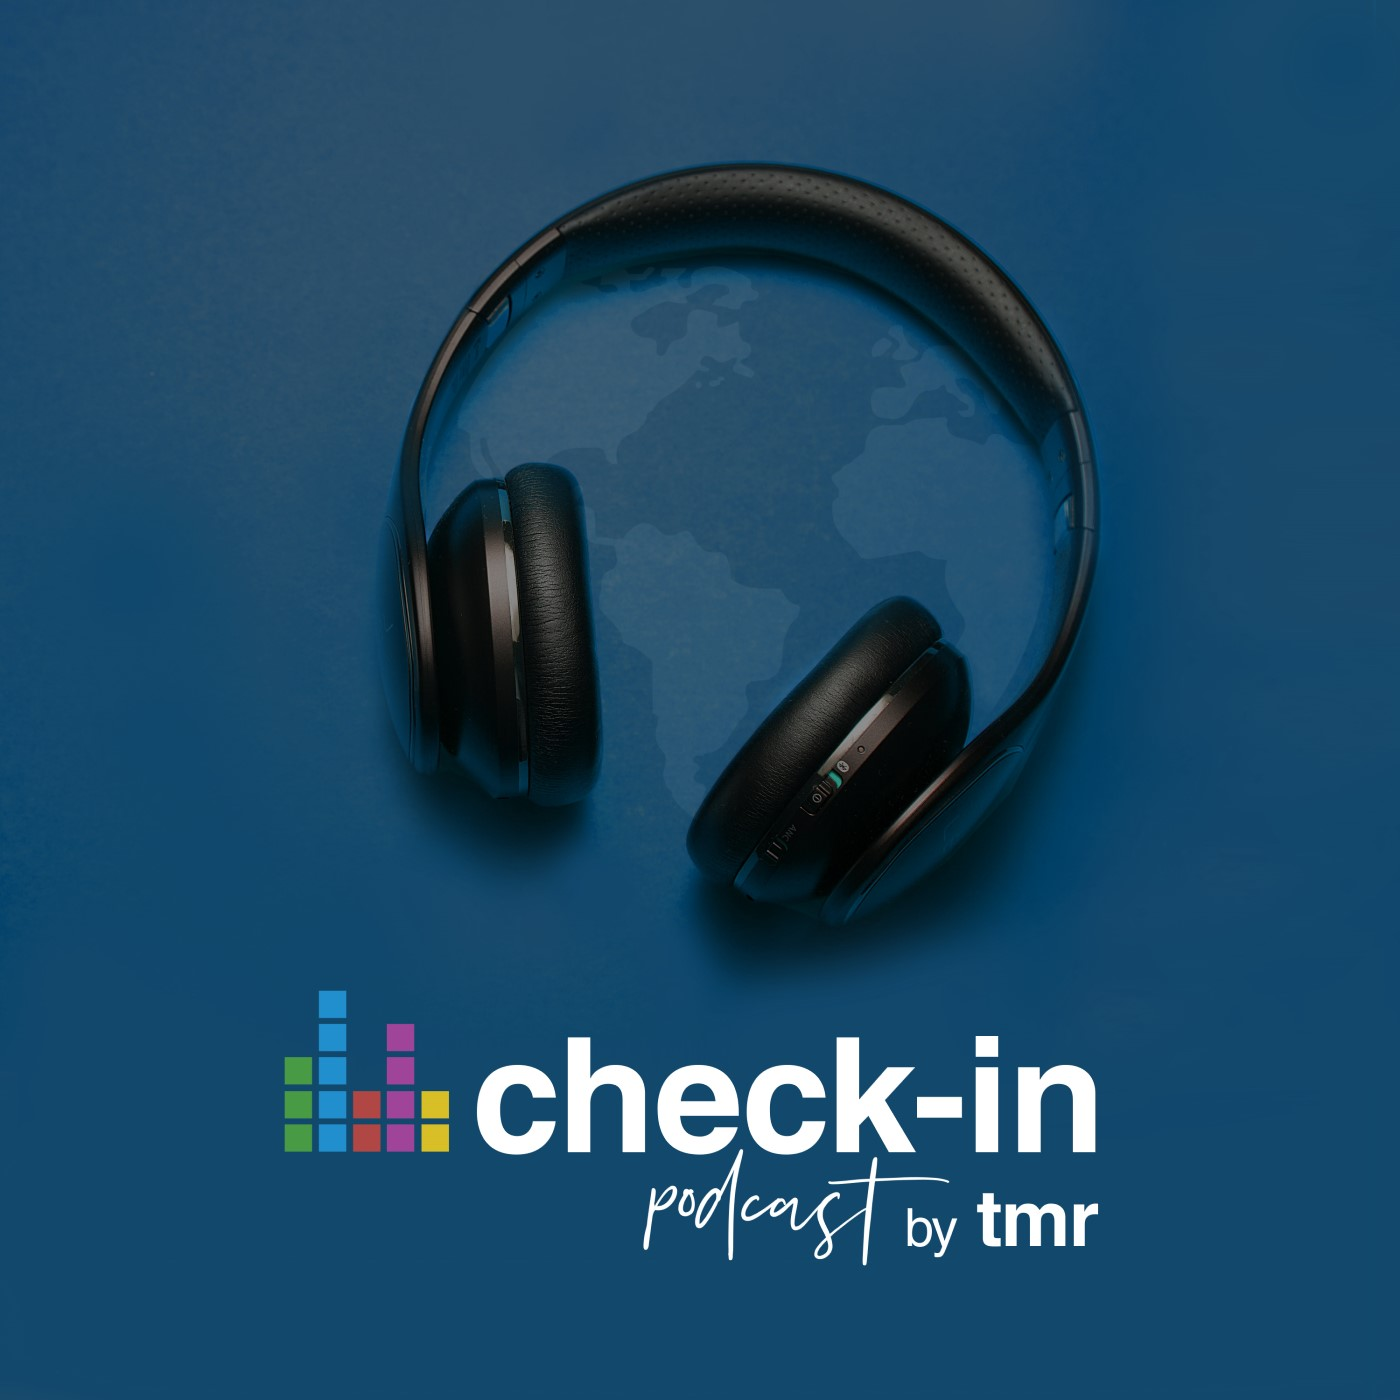 Check-in Podcast by TMR